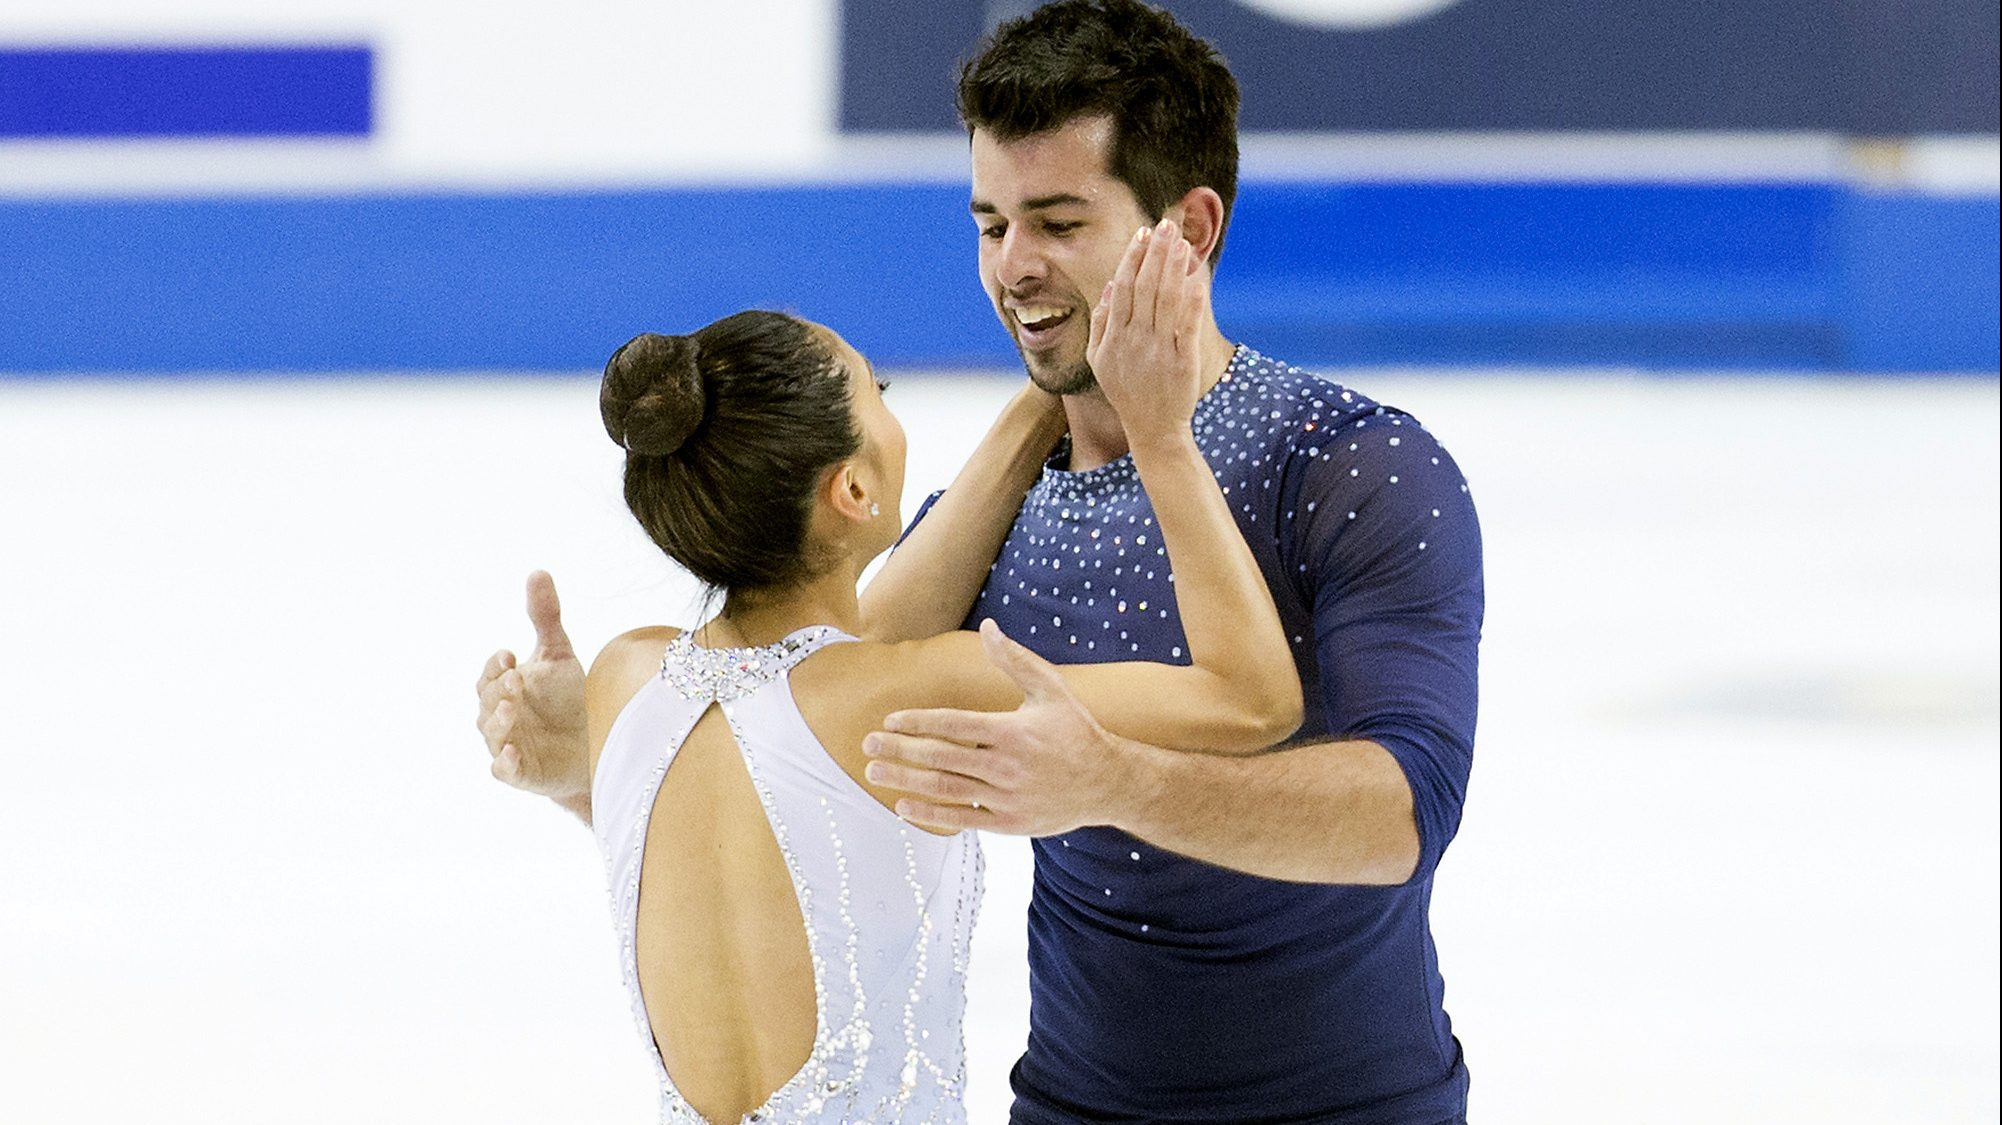 Jessica Calalang, Brian Johnson produce the pairs' moment of figure skating nationals